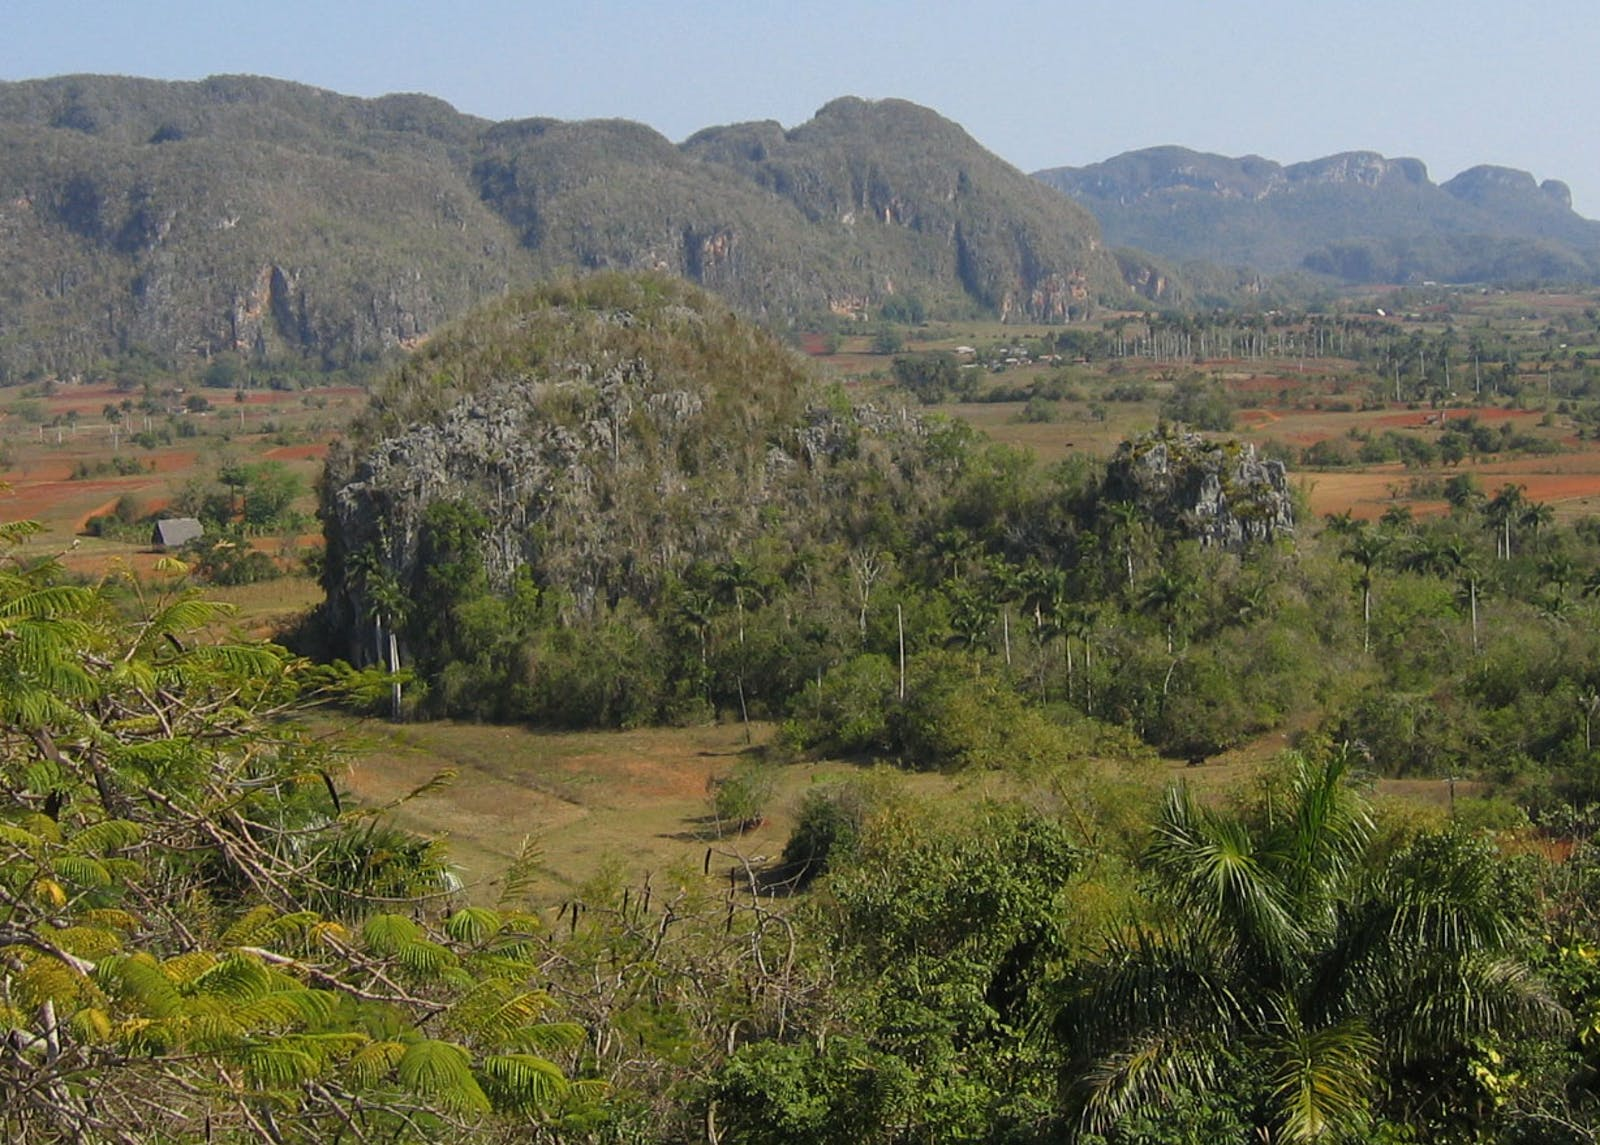 Cuban Dry Forests